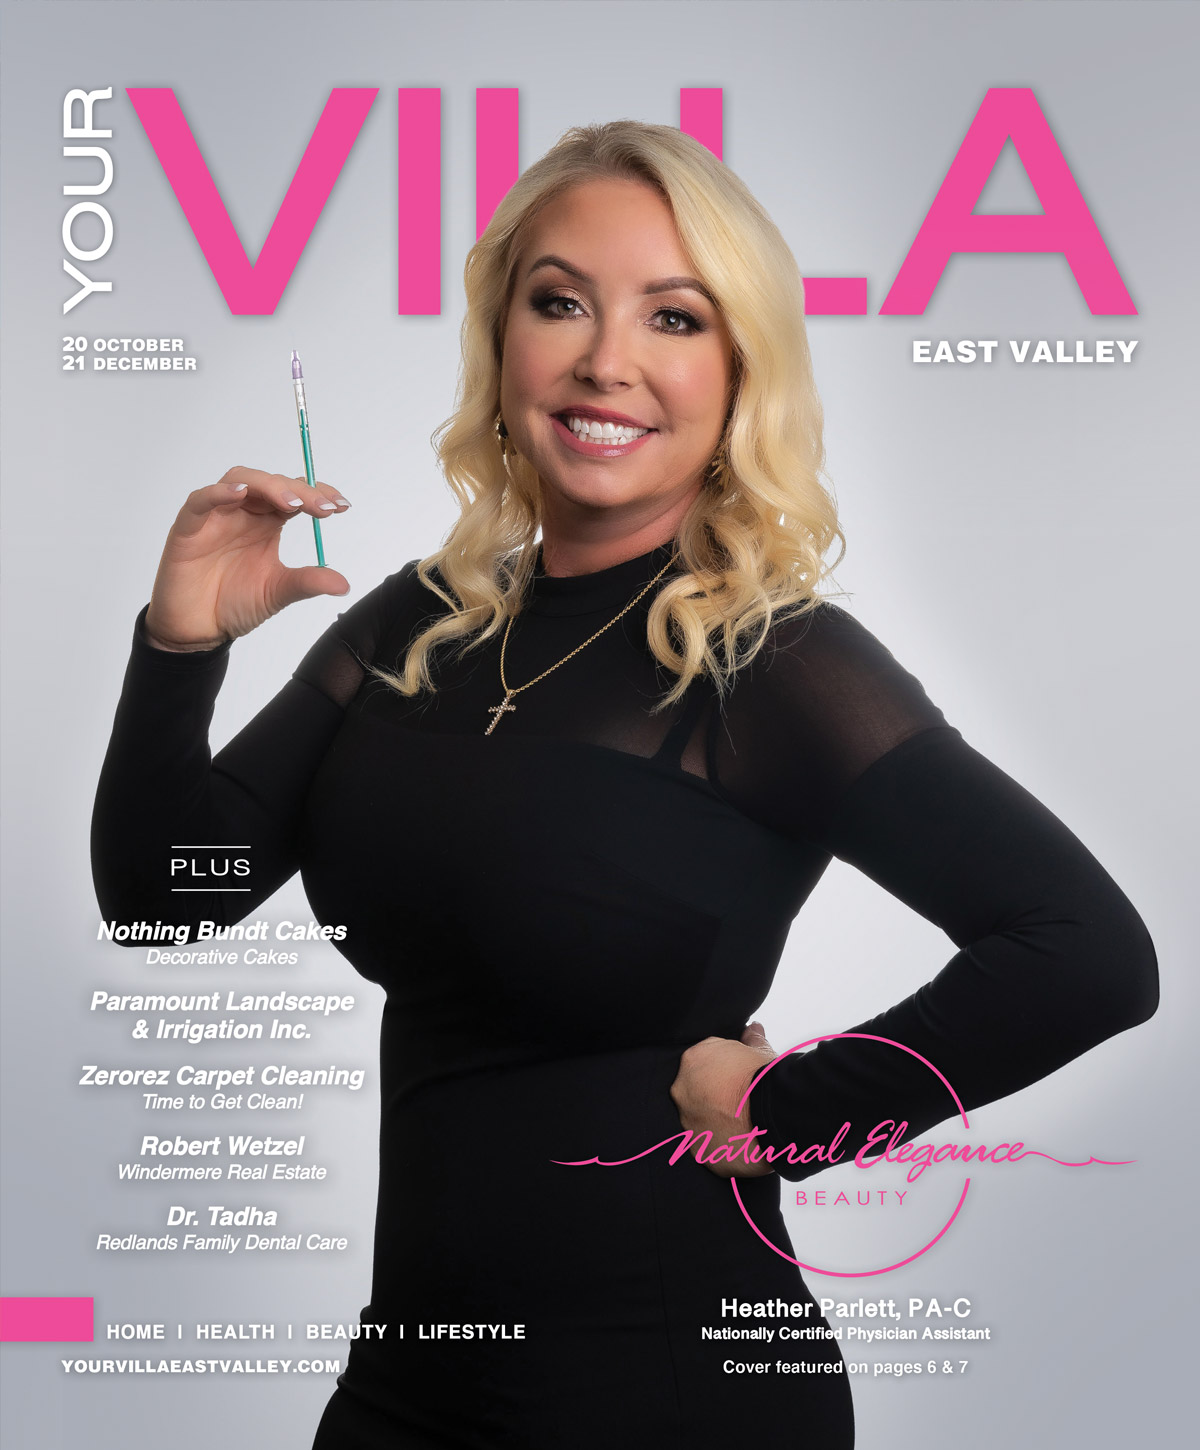 East Valley Cover